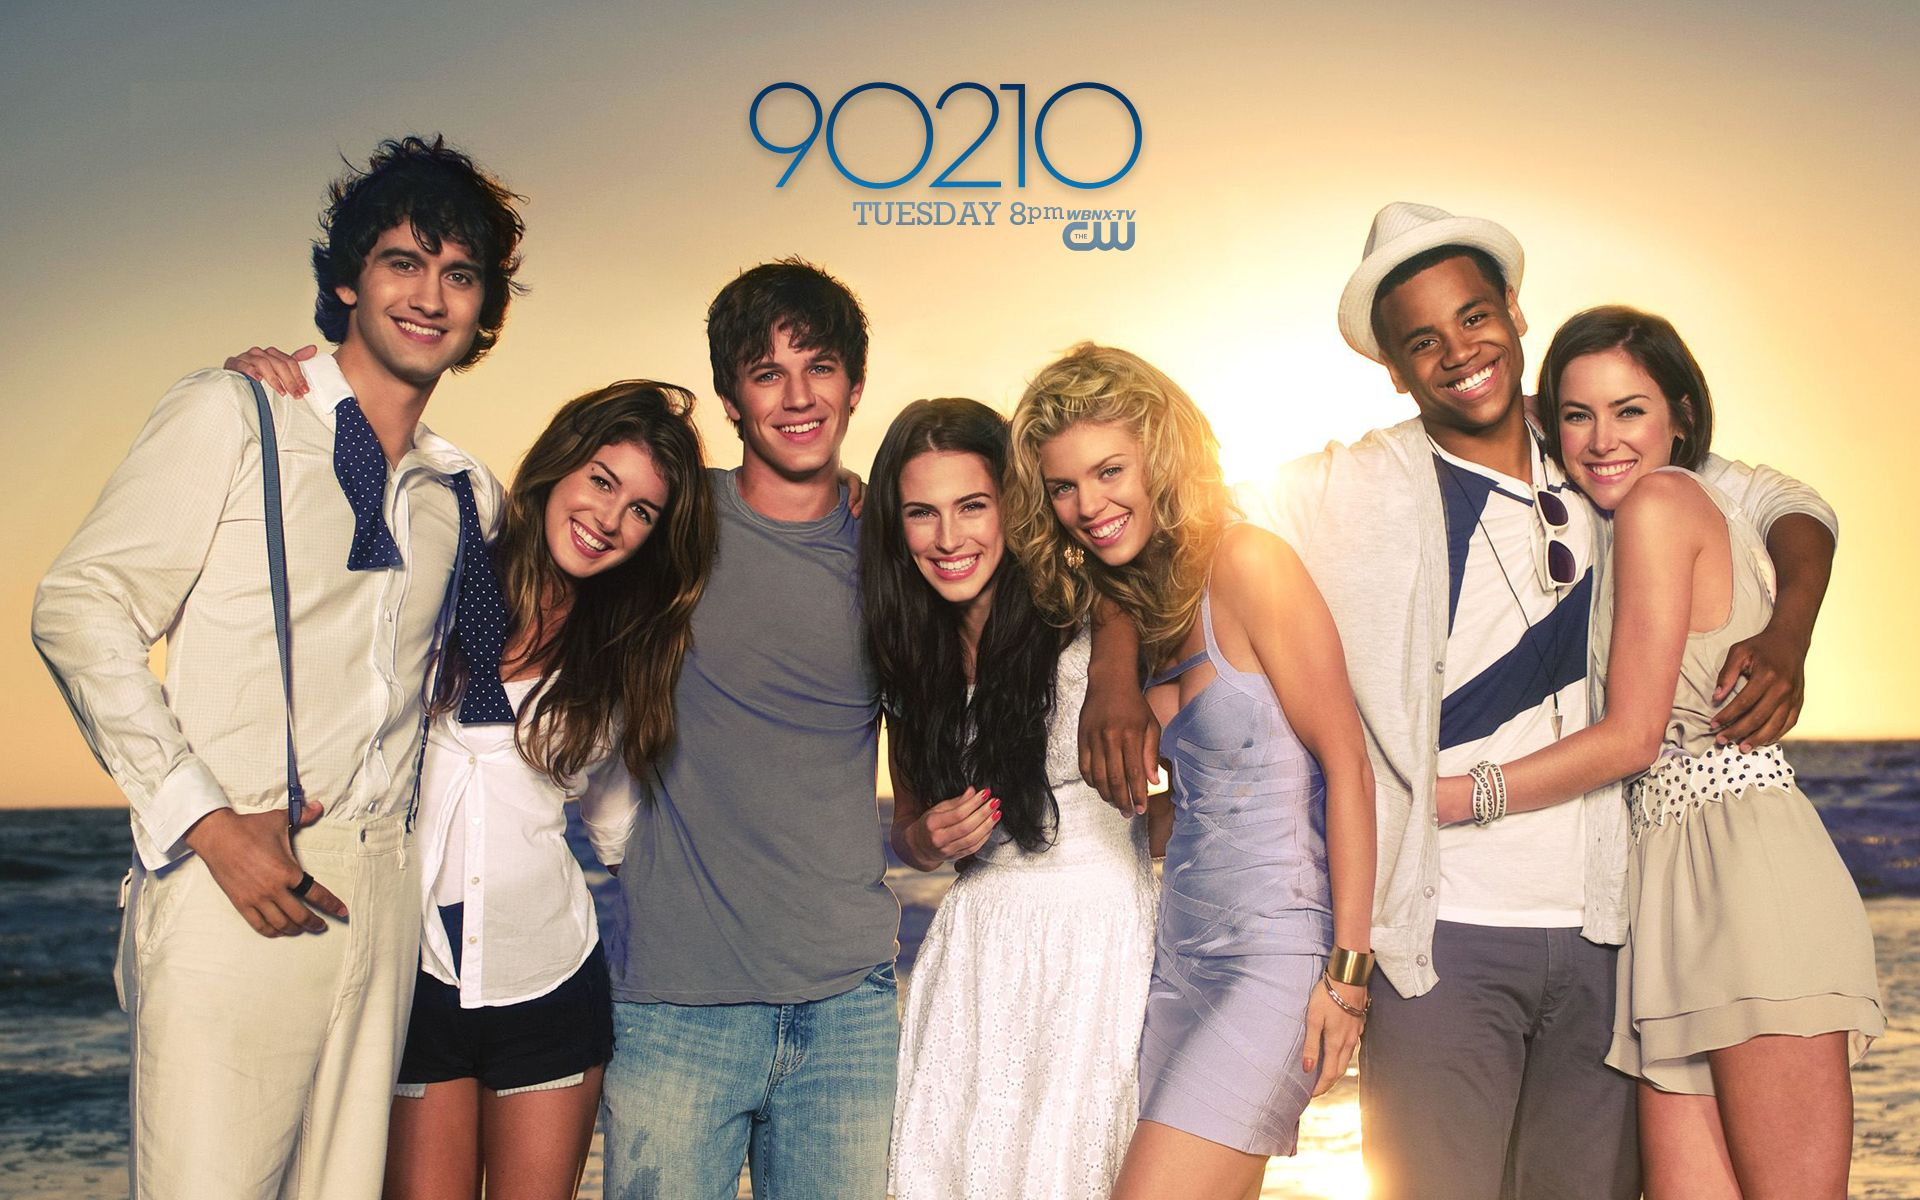 90210 ii still love the old Beverly Hills but the new show is great too!